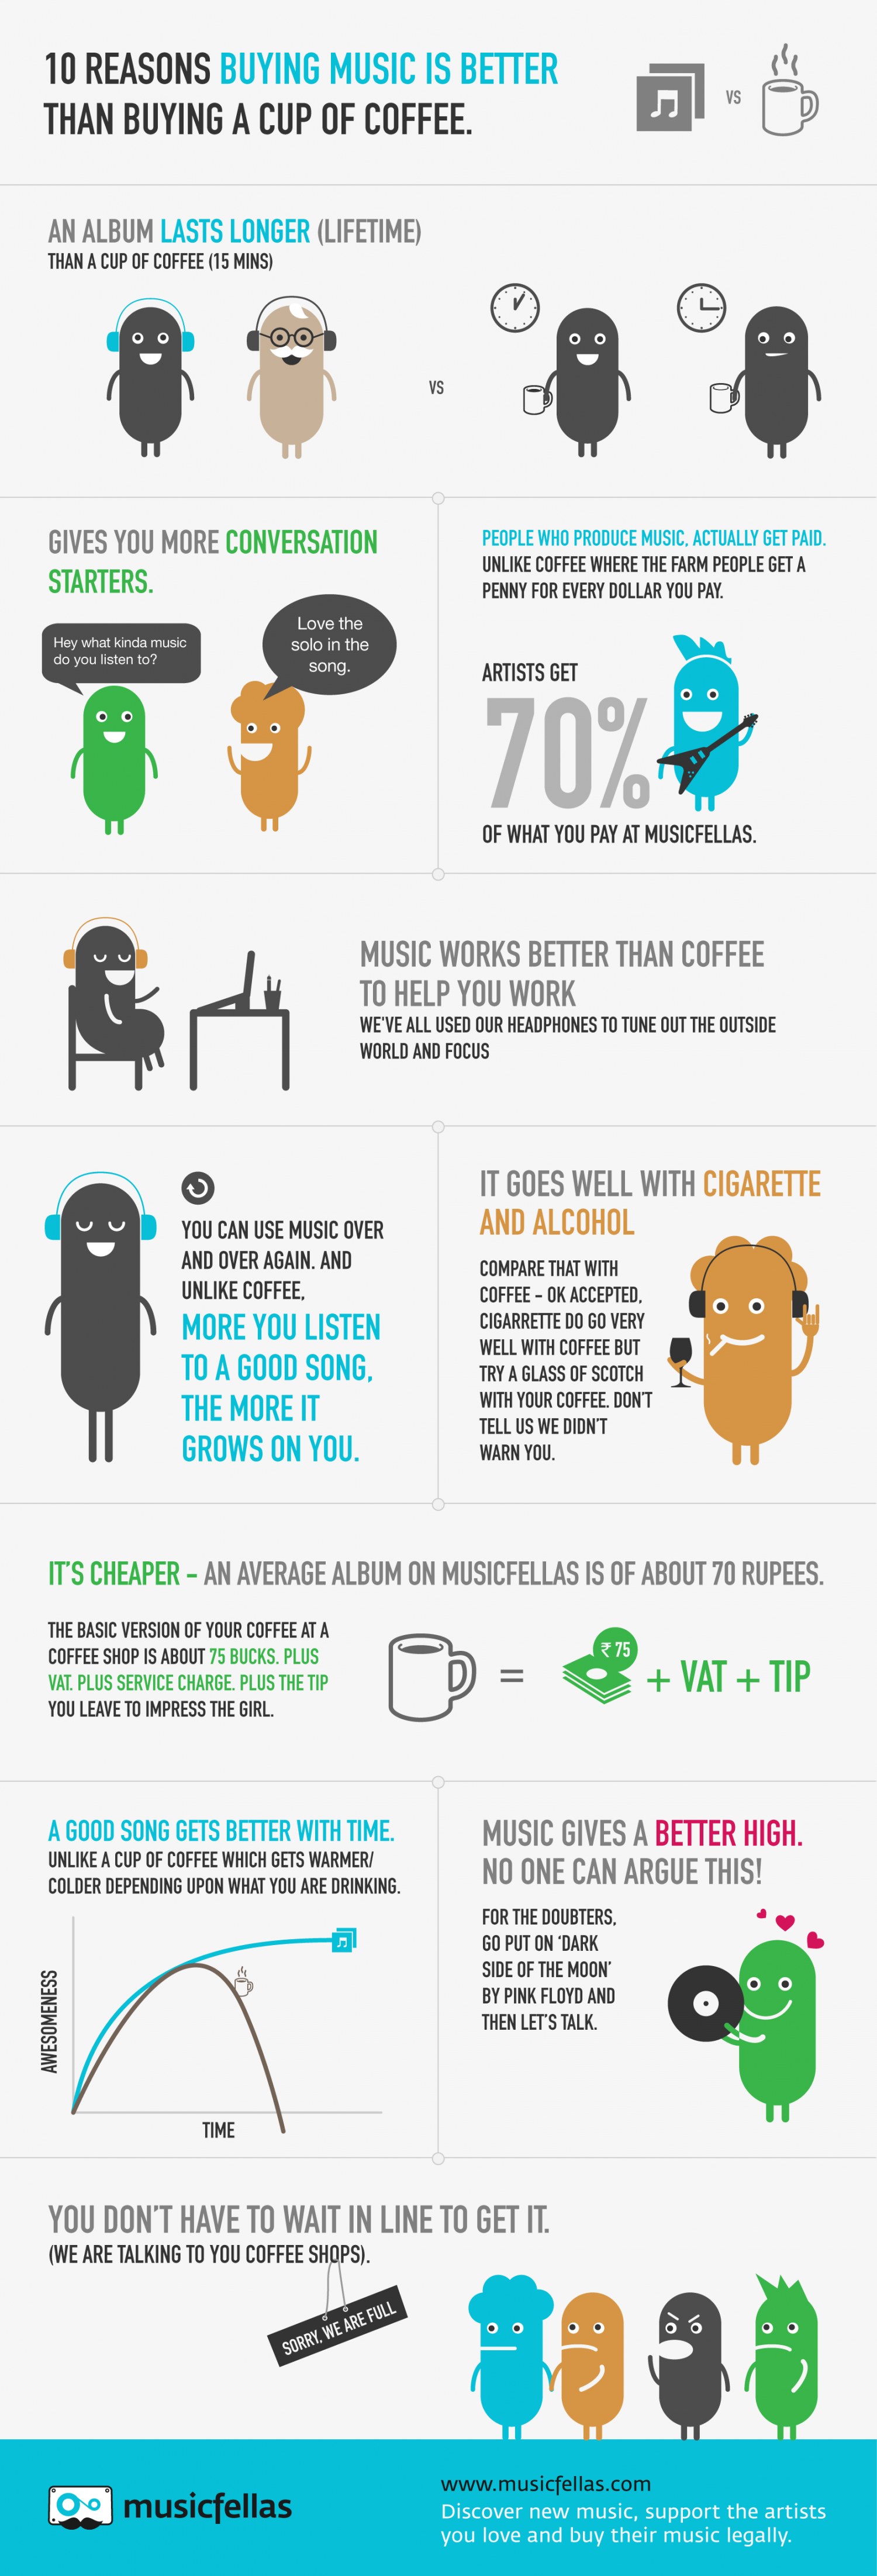 10 reasons why buying music is better than a cup of coffee Infographic